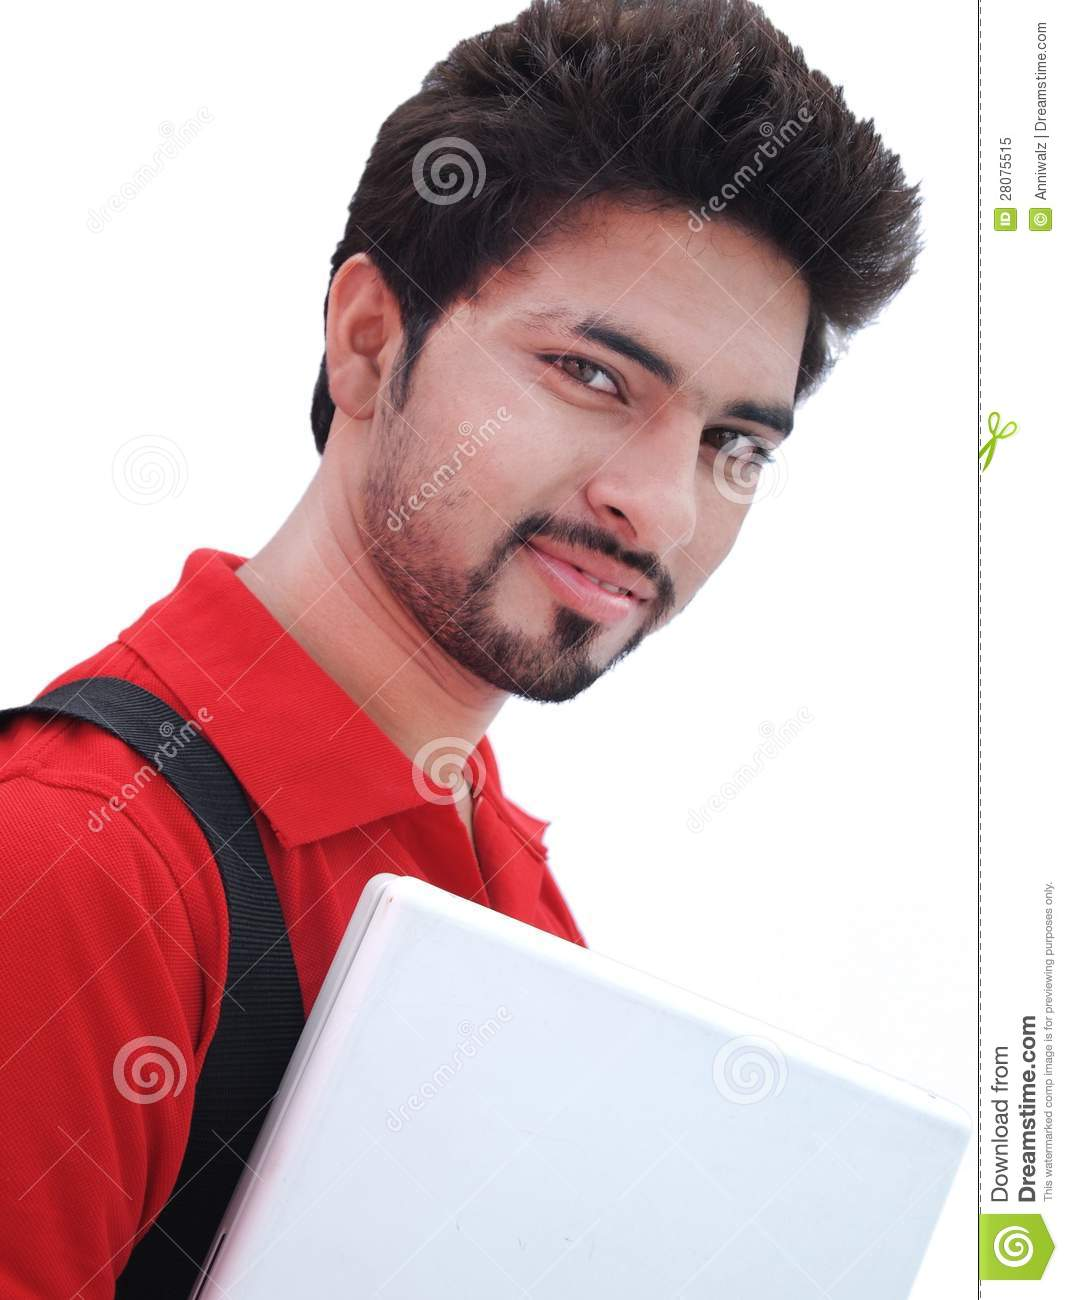 indian college student over white background  stock image